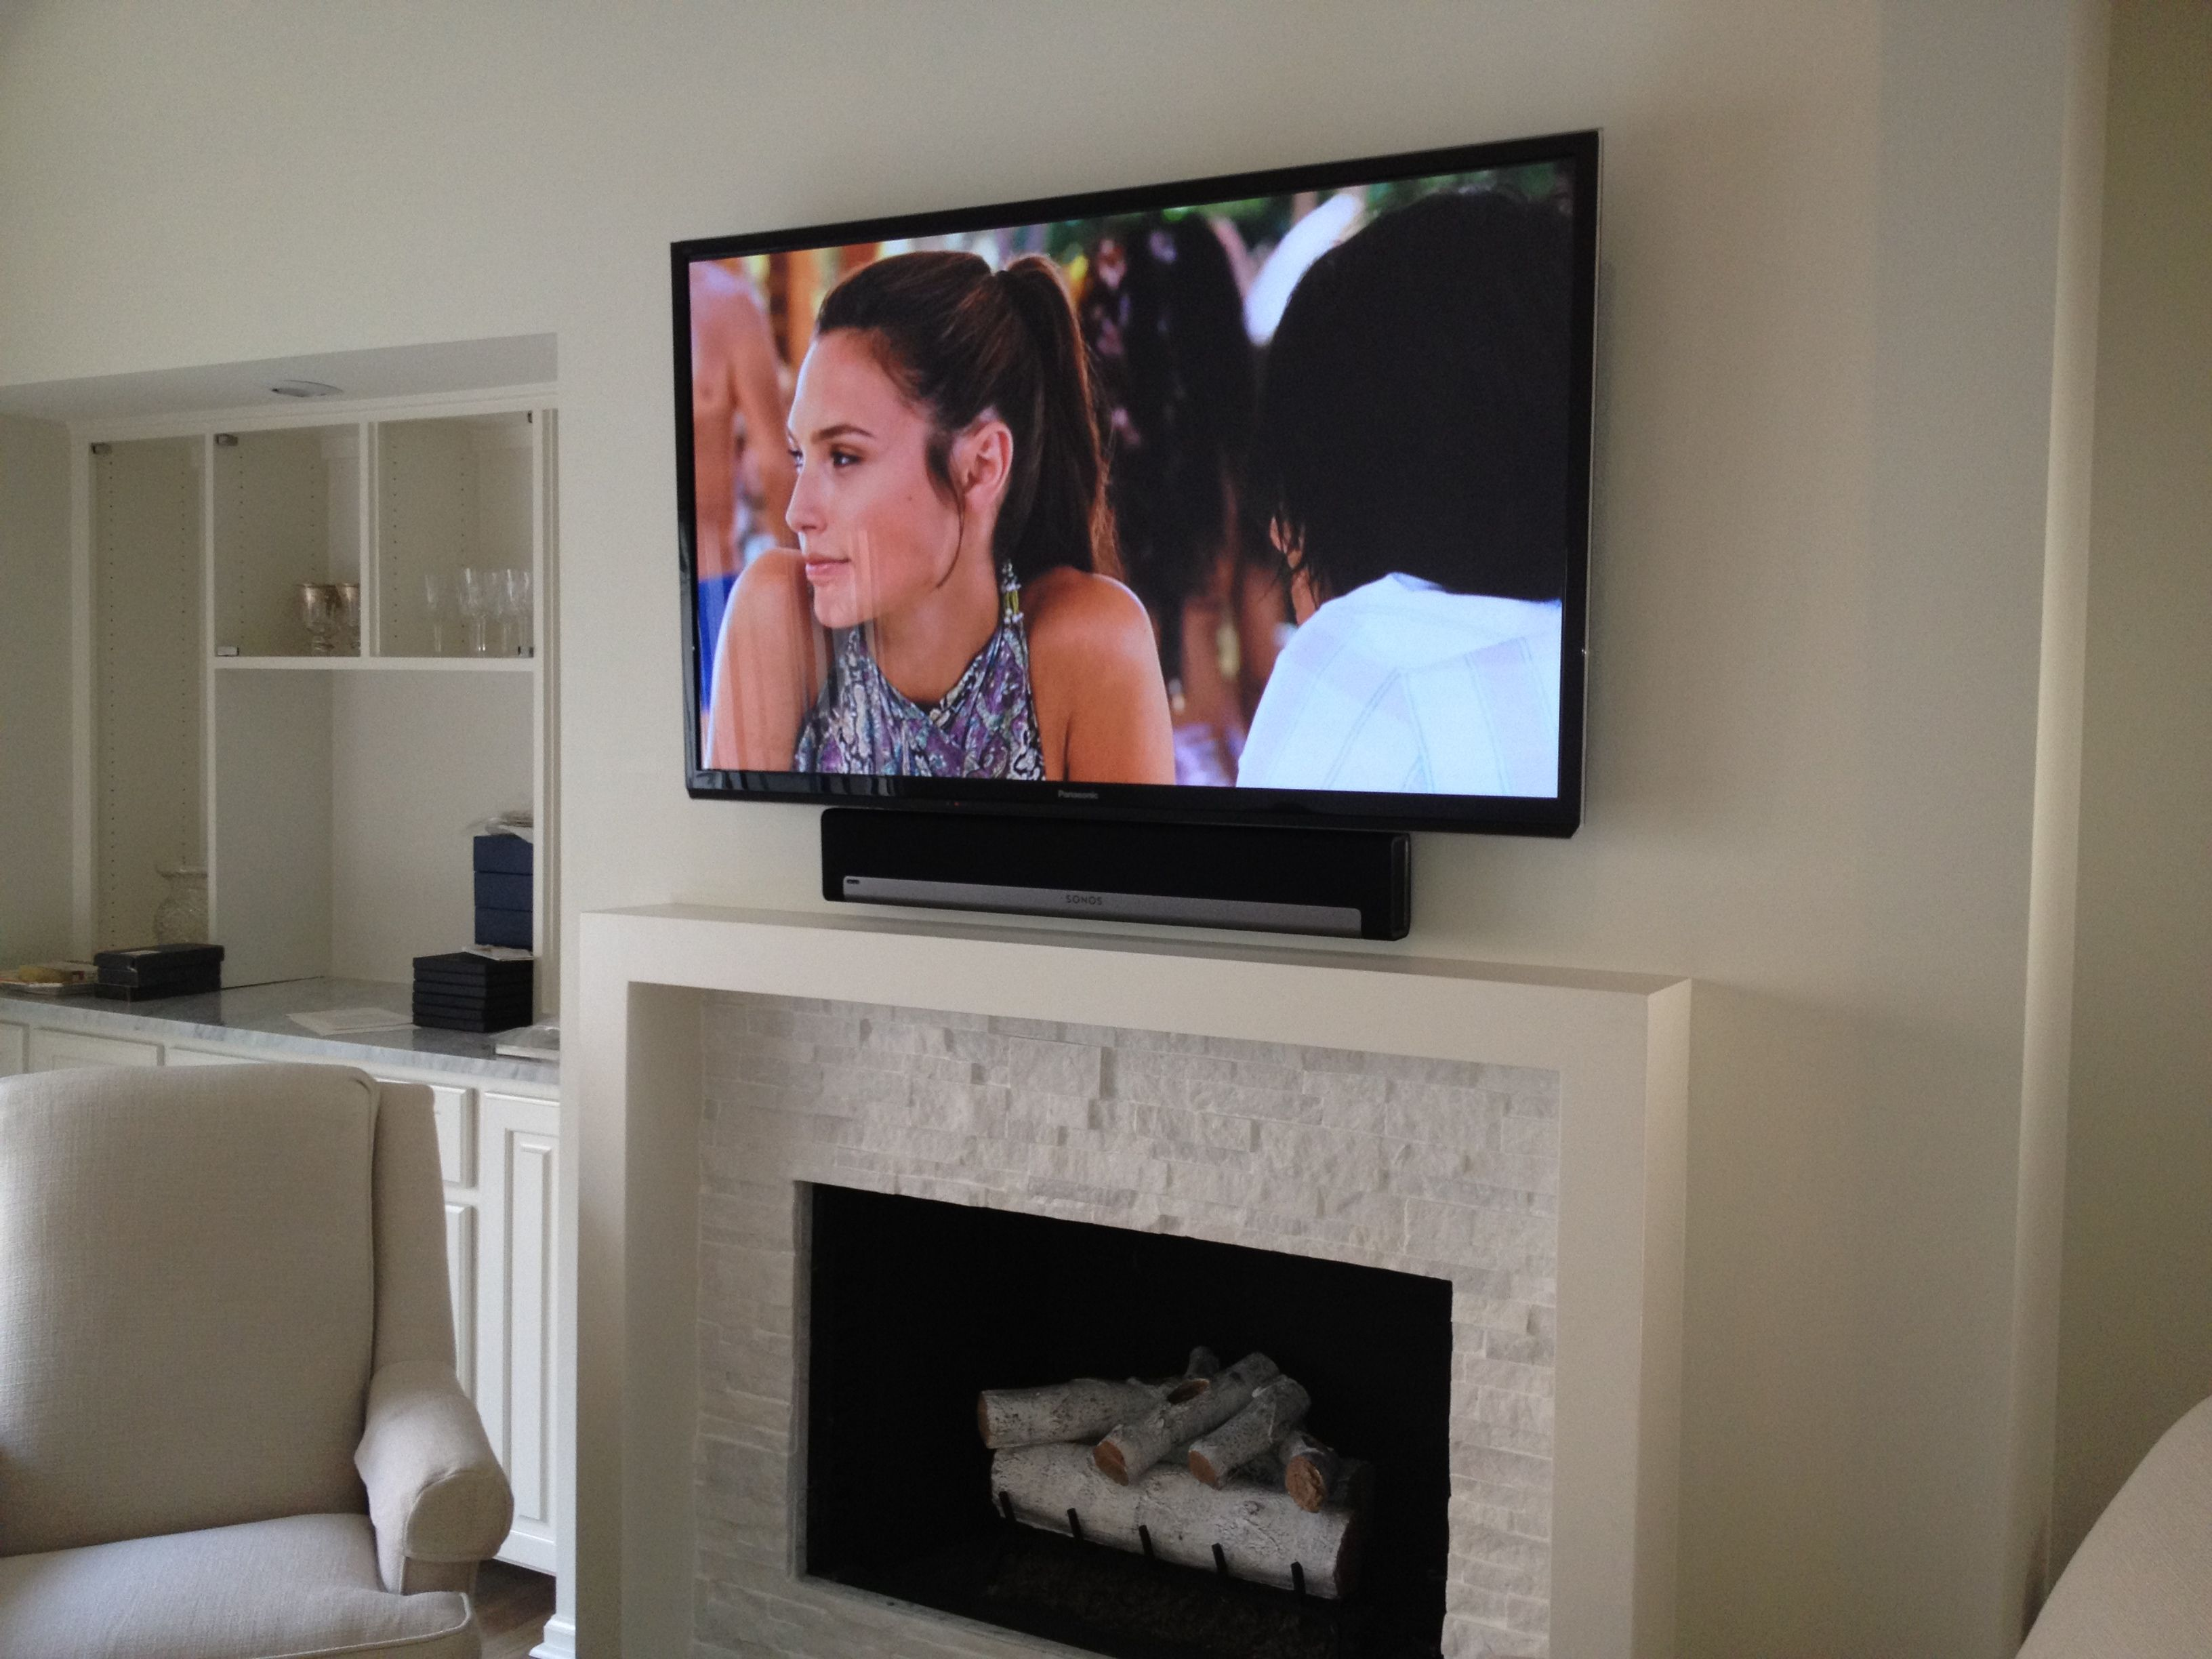 60 Display And Sonos Playbar Mounted Above A Fireplace Home